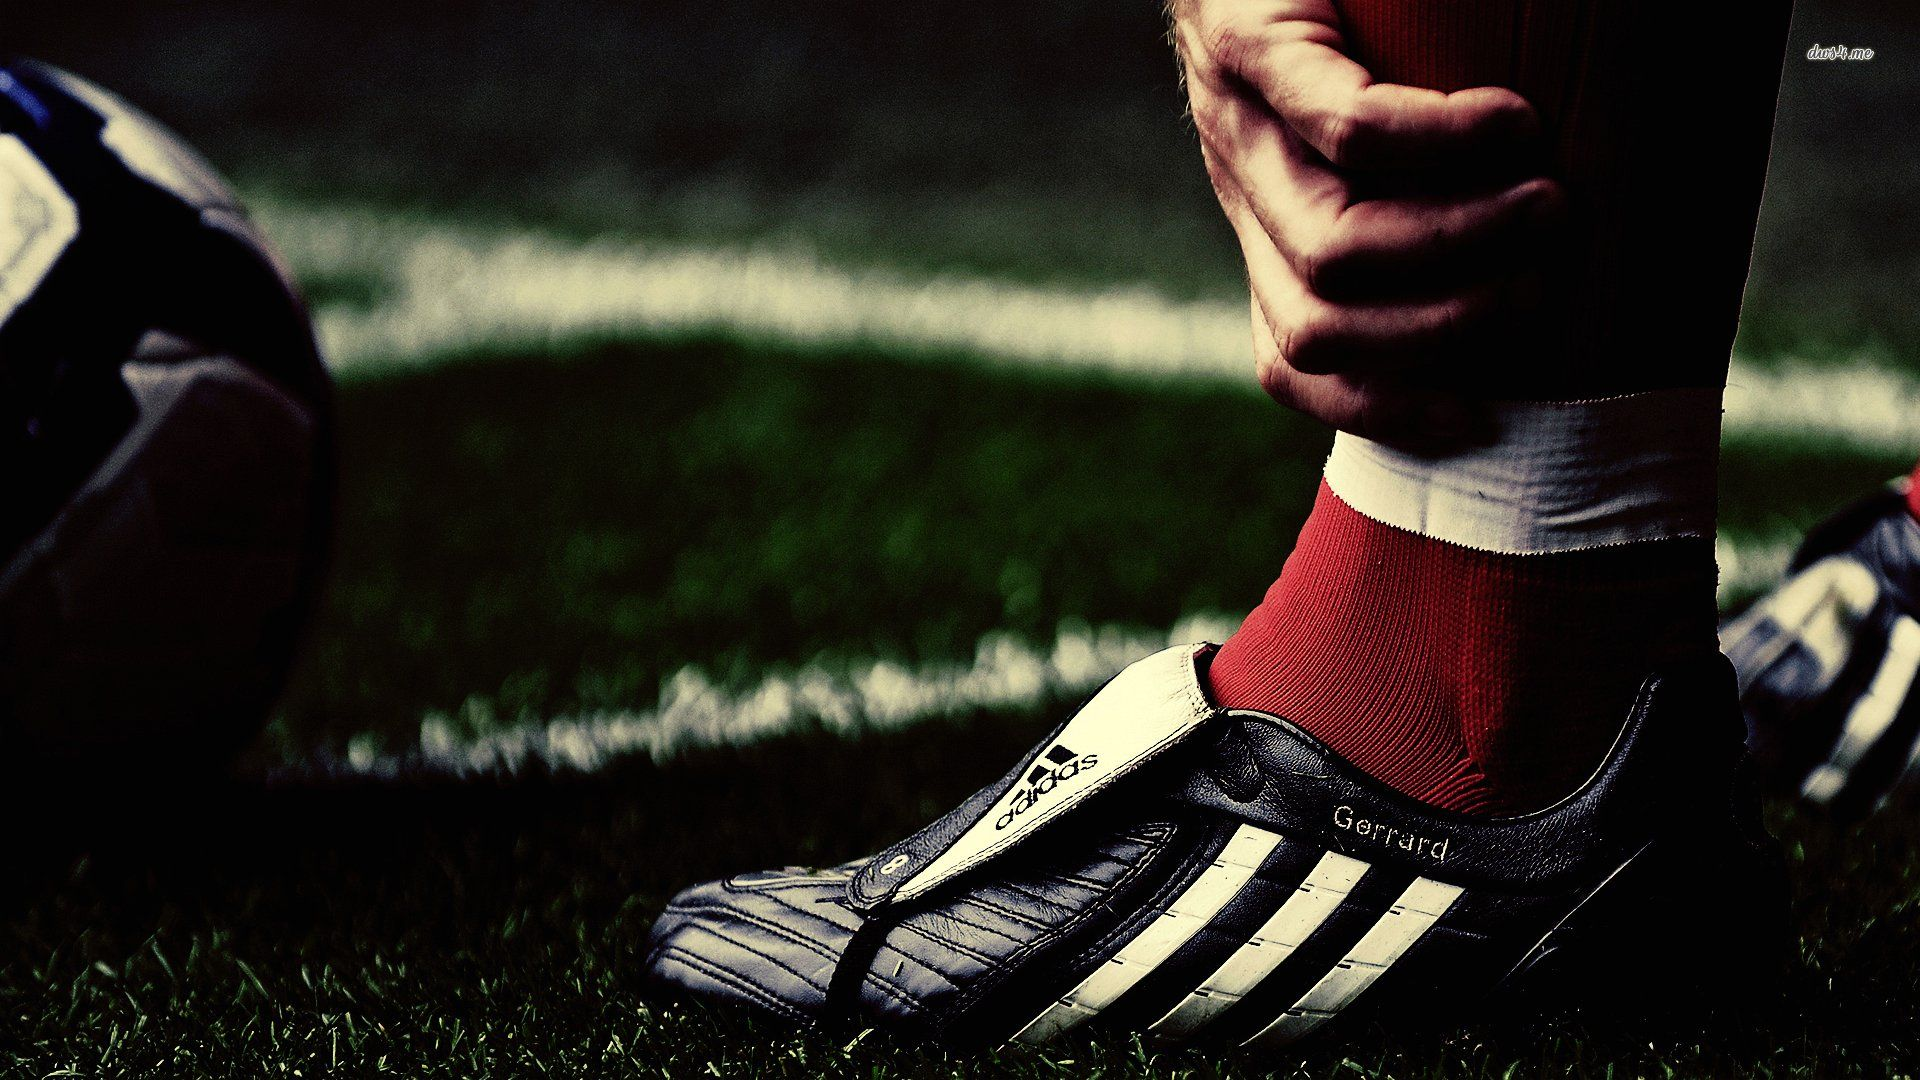 Adidas Boots HD Wallpapers 10